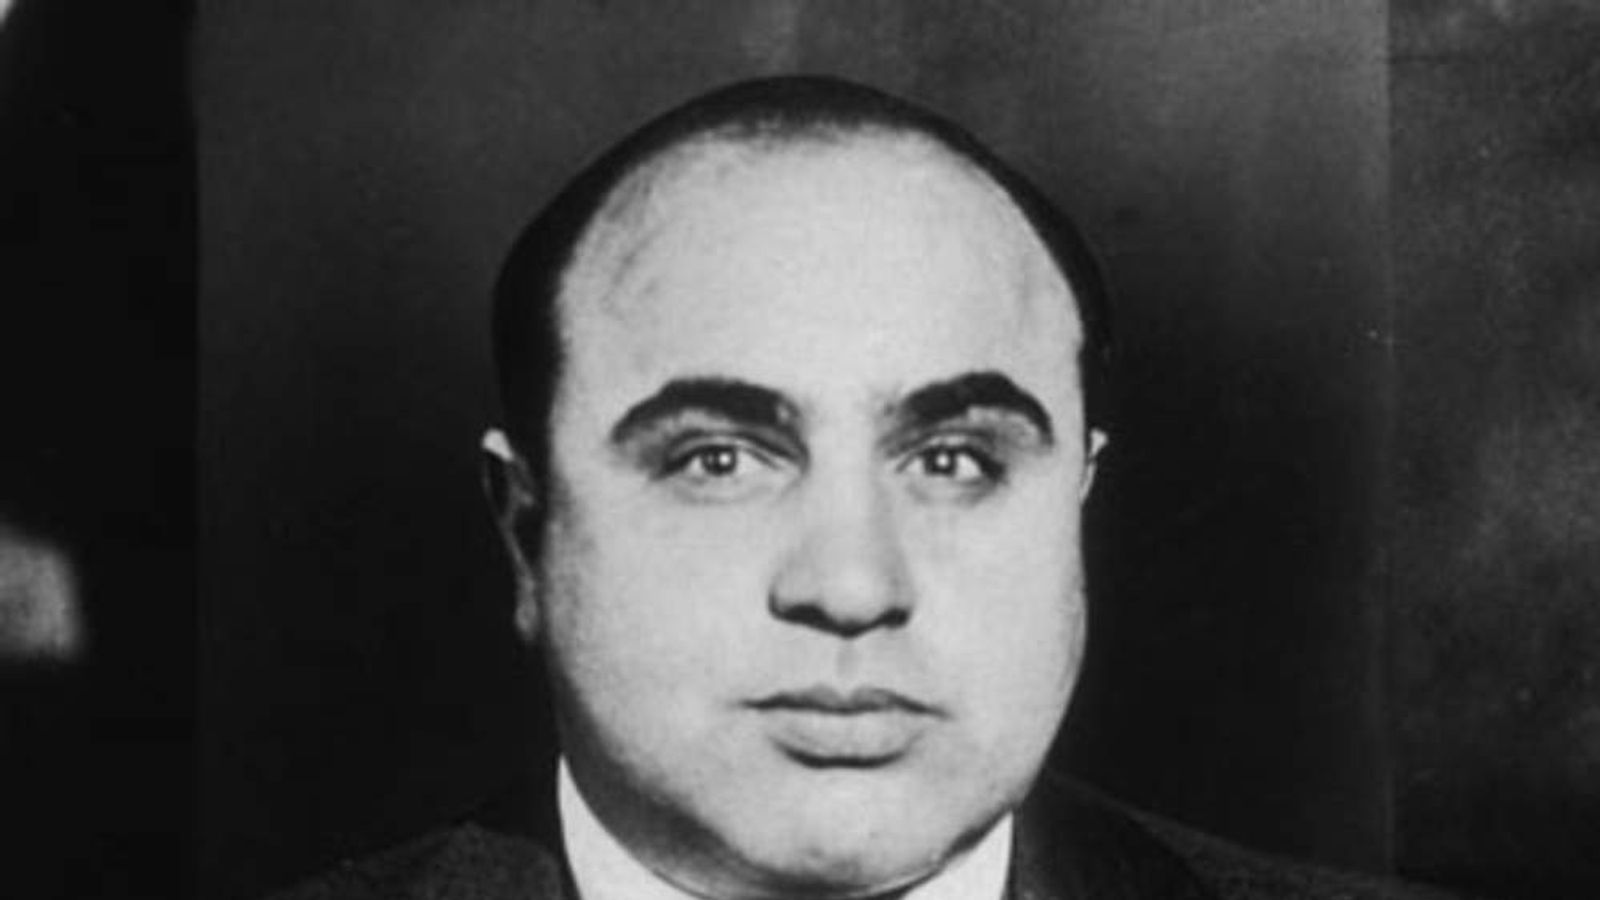 a biography of al capone an organized crime boss Biography of al capone, chicago crime boss during prohibition when one thinks of the city of chicago, ill the museums, hospitals, universities and present day inhabitants are seldom thought of instead, the organized crime gangs and their notorious bosses of some eighty years ago are most often brought to mind.